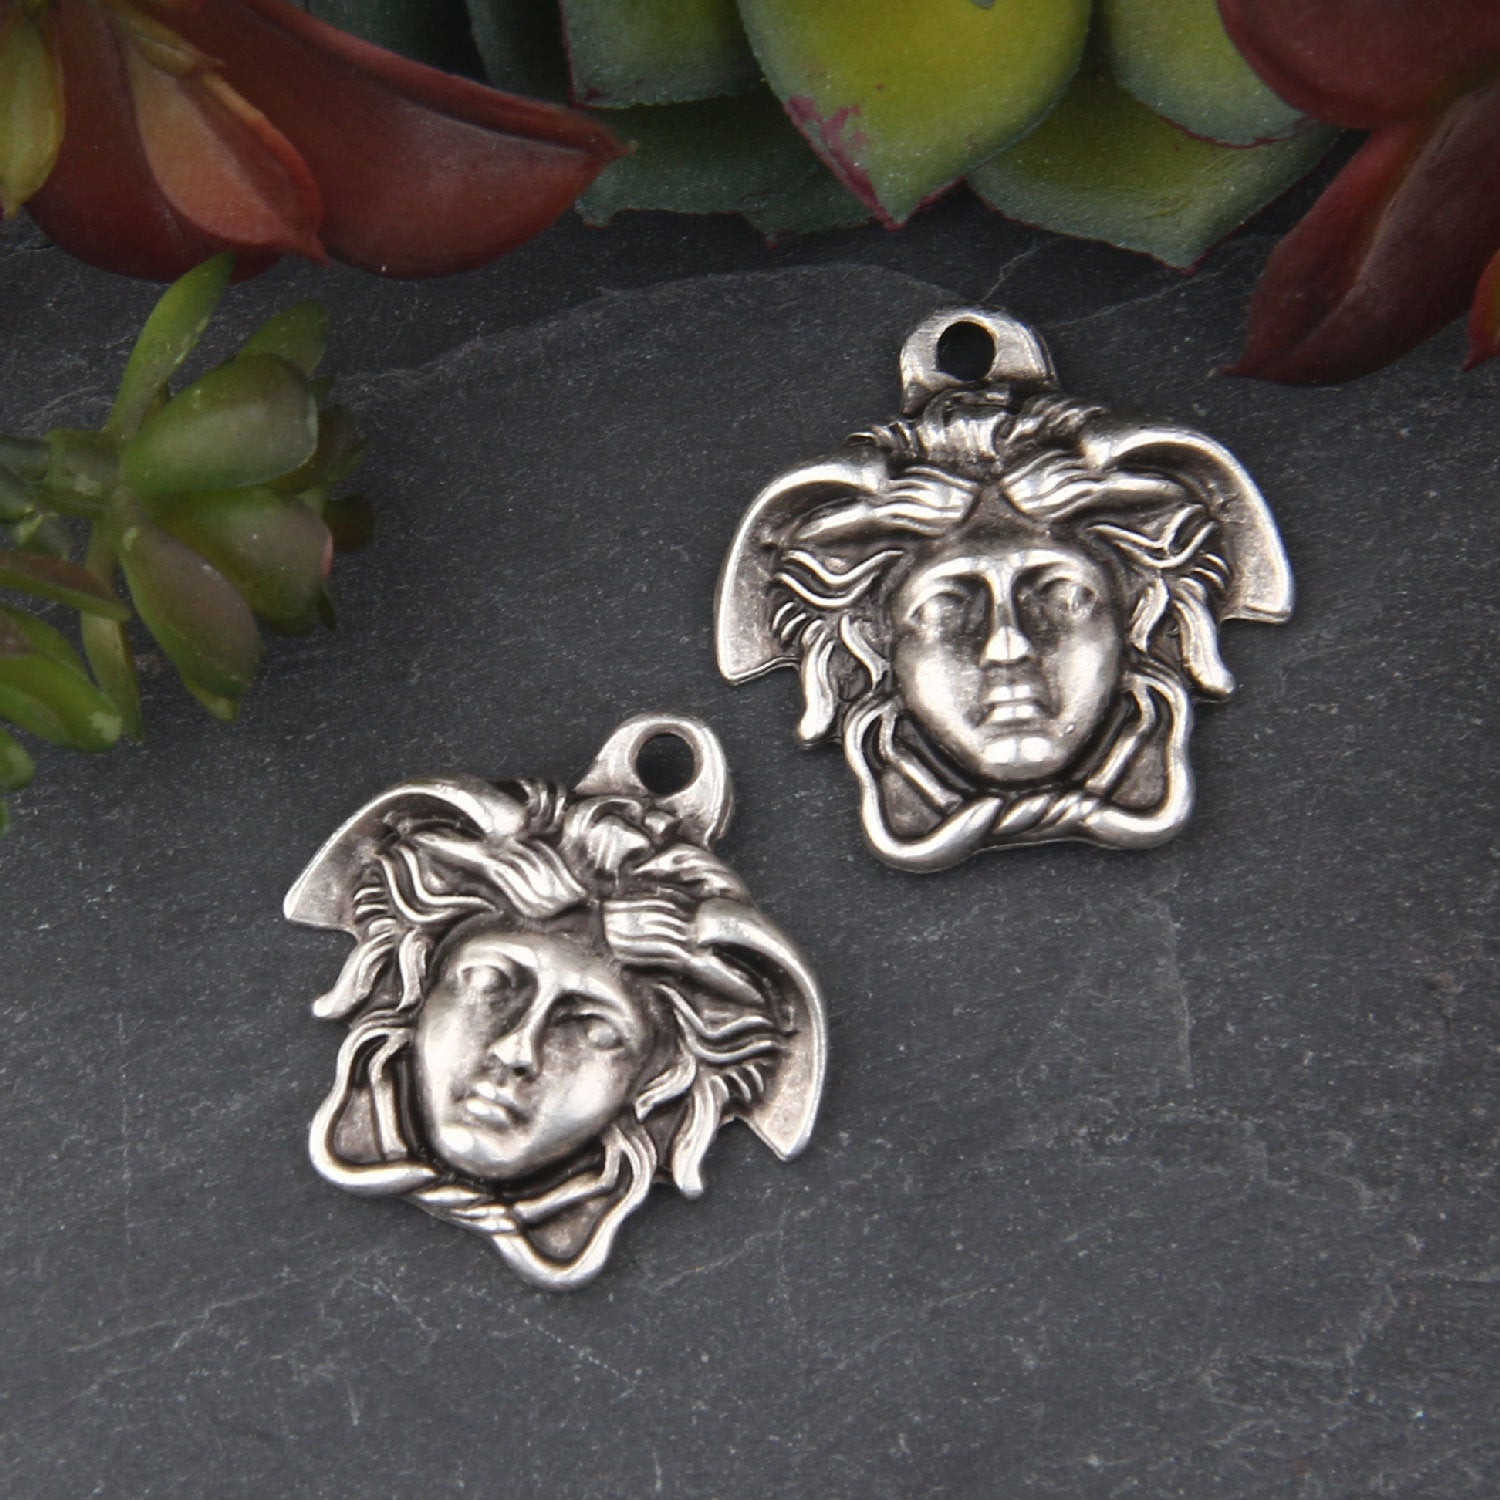 Silver Medusa Pendant Charms, 1-sided Medusa Drop Charms, Medusa Pendant, Greek Medusa Head Charms, 2 pieces // SCh-207